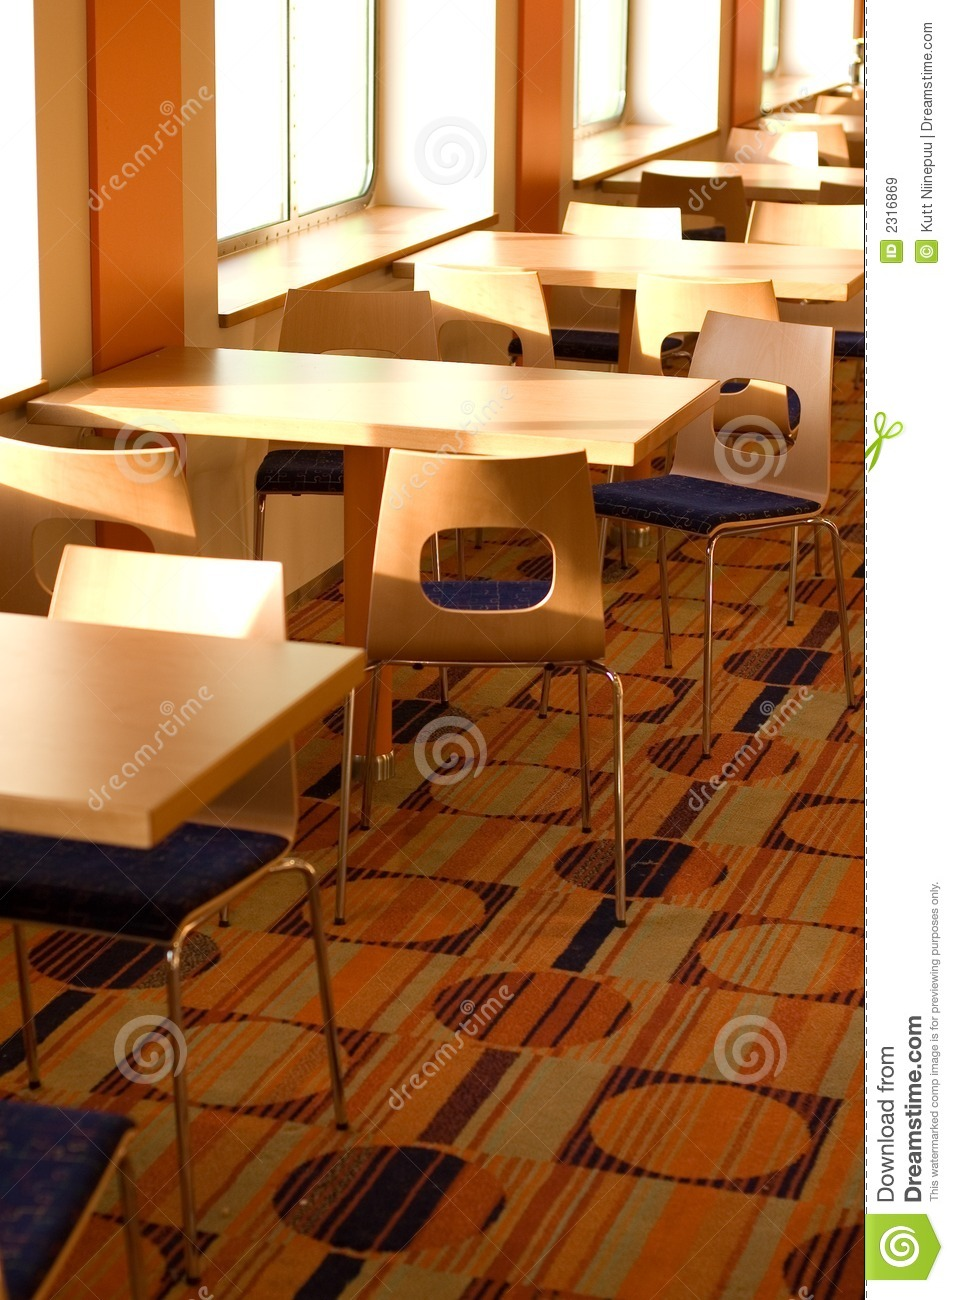 Cafe Table And Chairs Royalty Free Stock Images - Image: 2316869